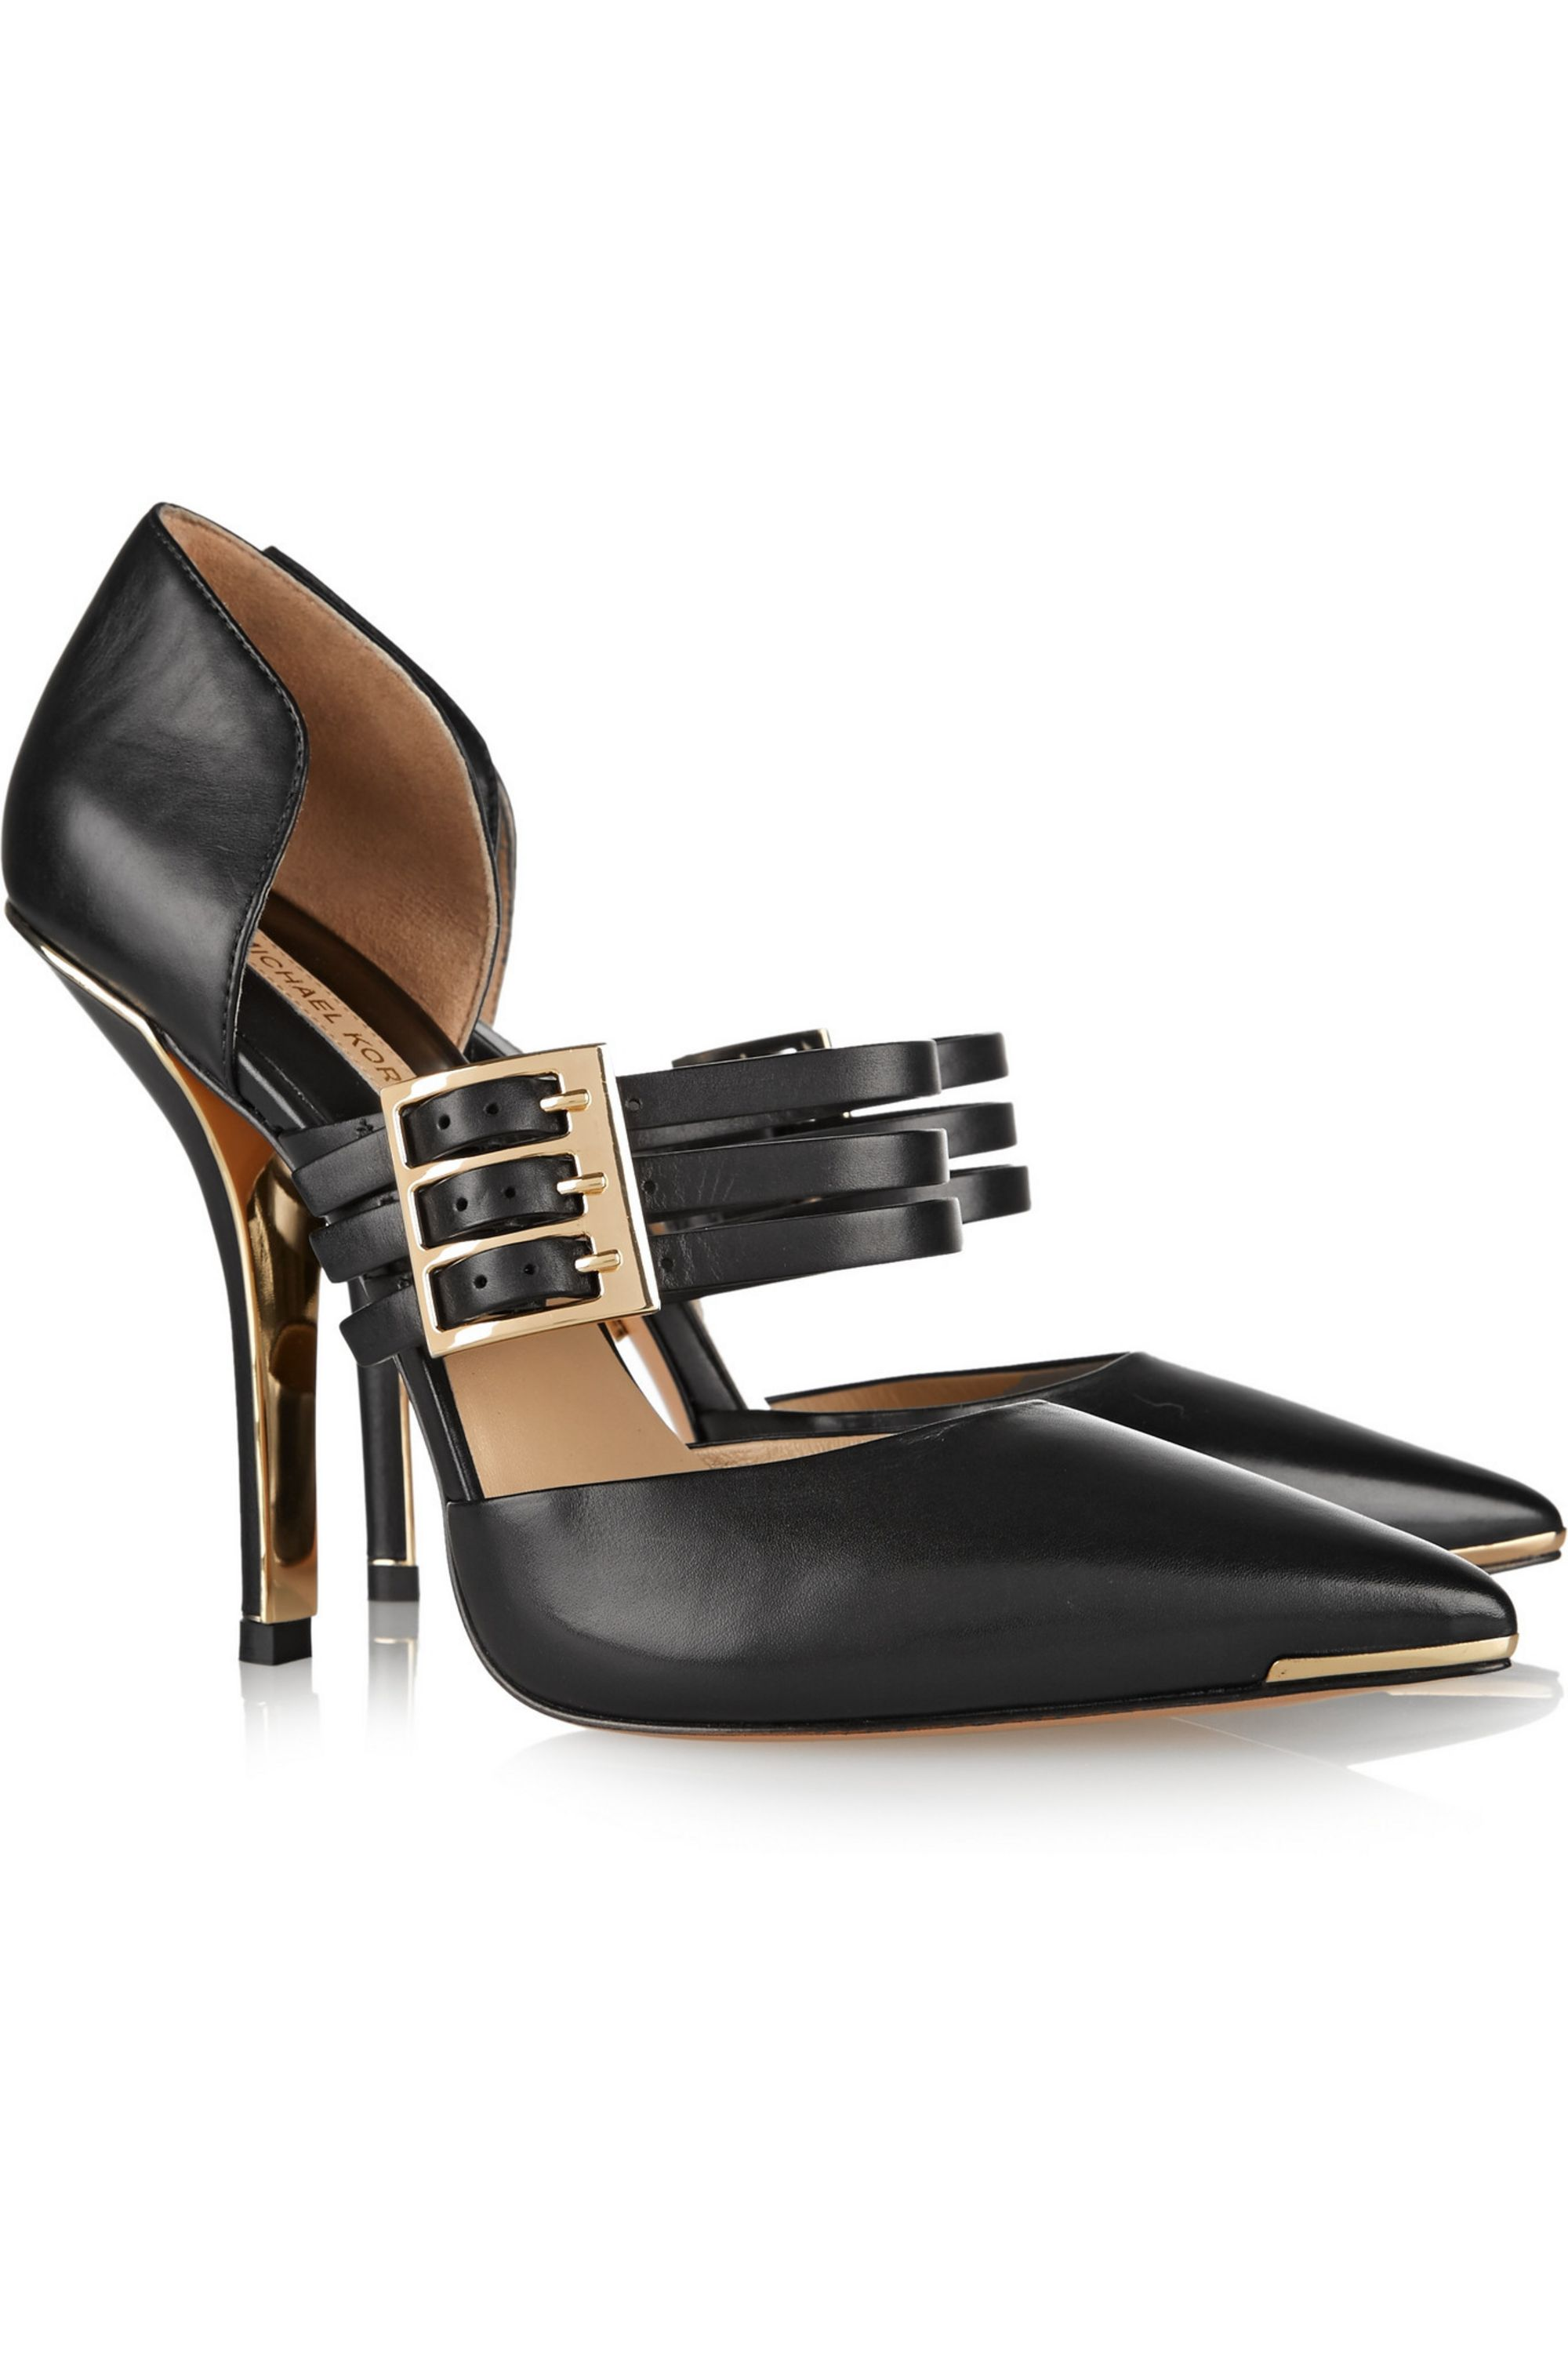 Michael Kors Collection Annalee leather pumps